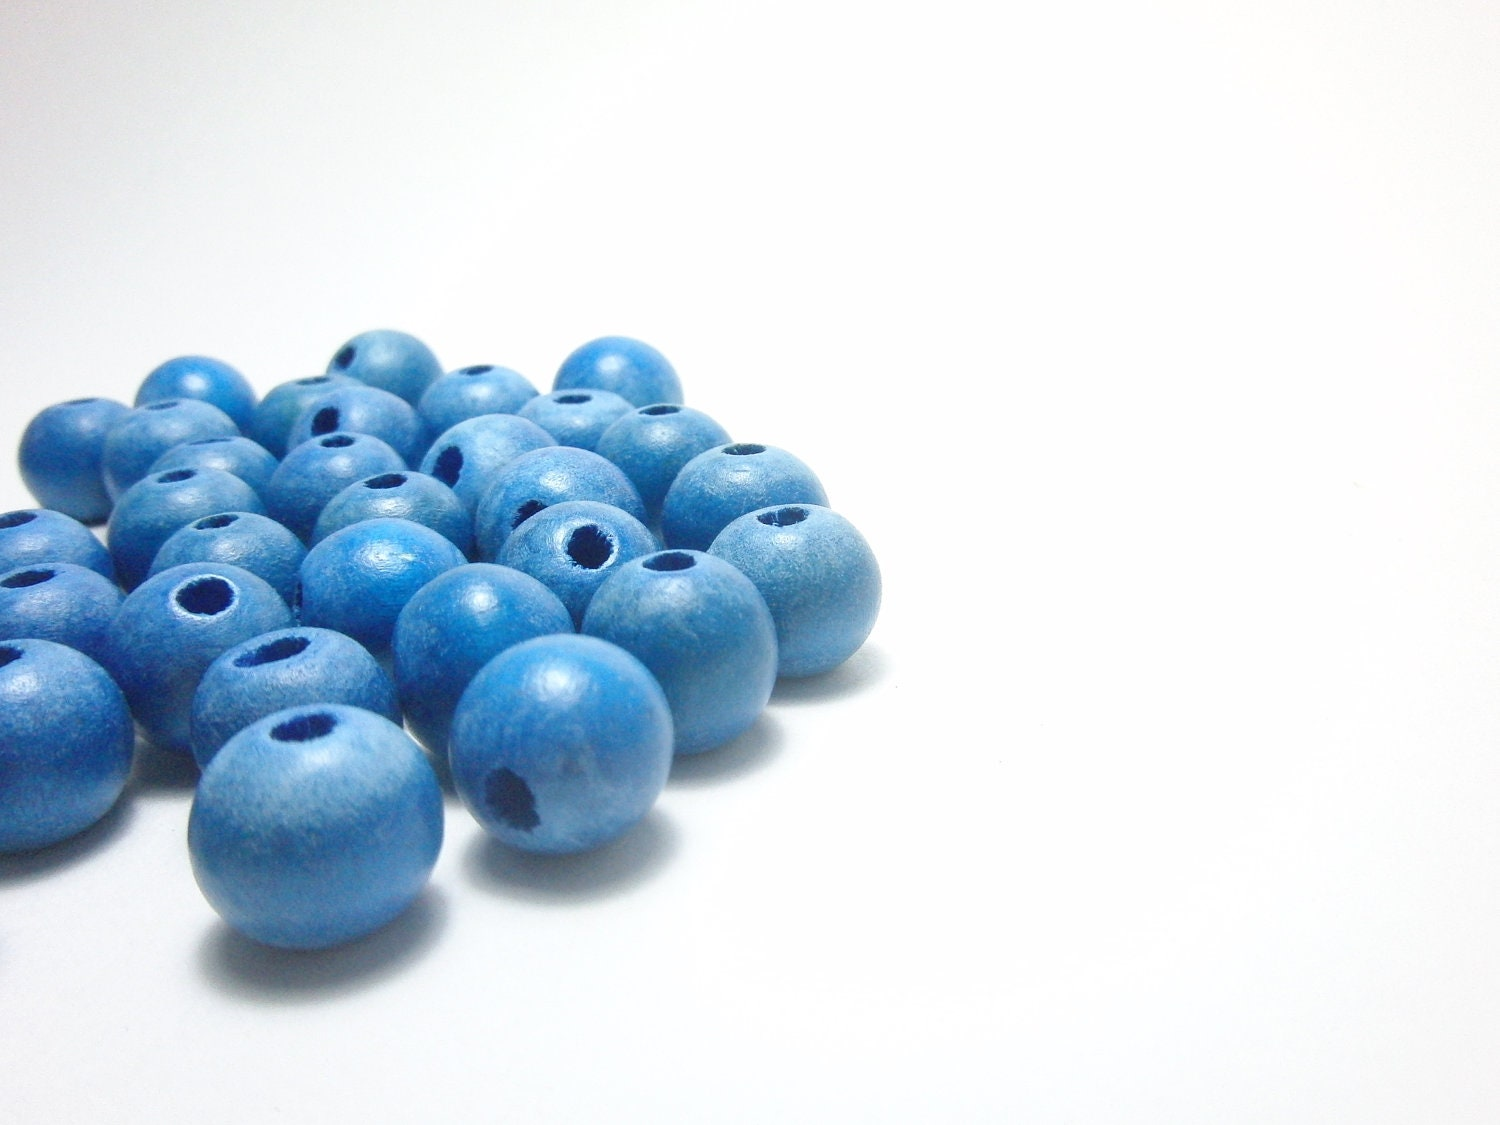 Blue Wood Beads 12mm - prendasbyenid